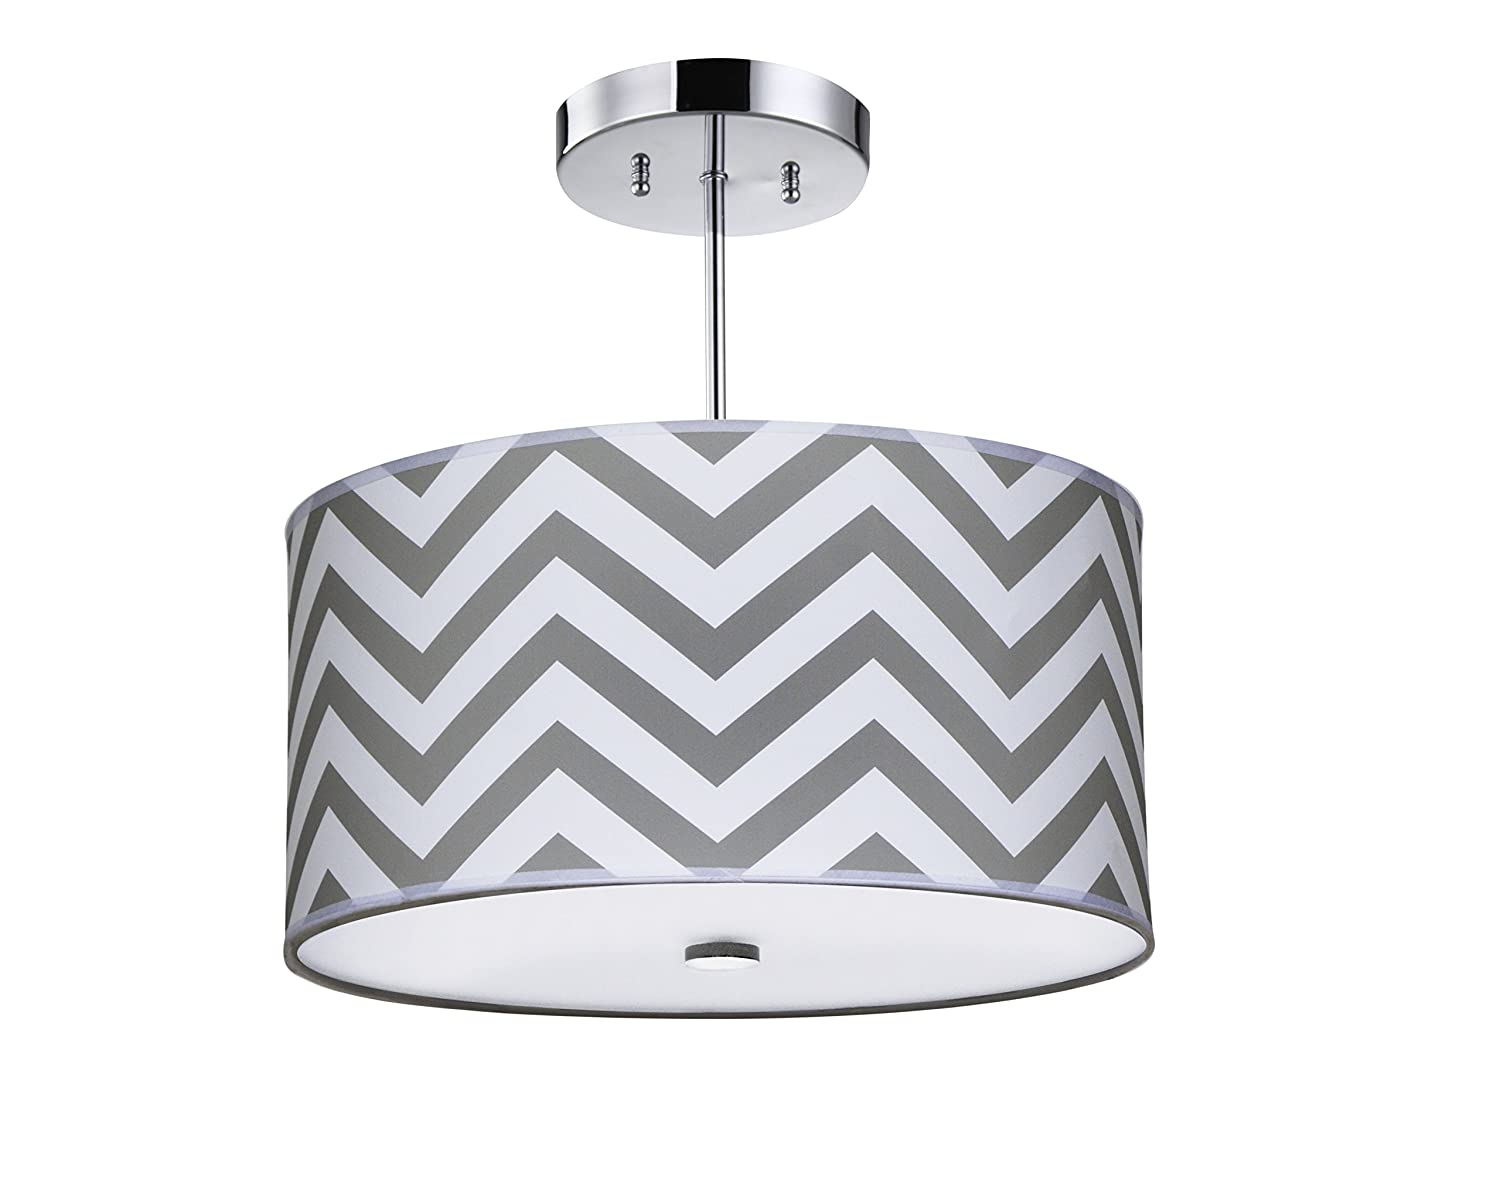 nursery ceiling lighting. Firefly Kids Lighting - Grey Chevron Light Fixture, 16-Inches, 3-Light E26, Polished Chrome With Fabric Shade And Glass Diffuser Amazon.com Nursery Ceiling S